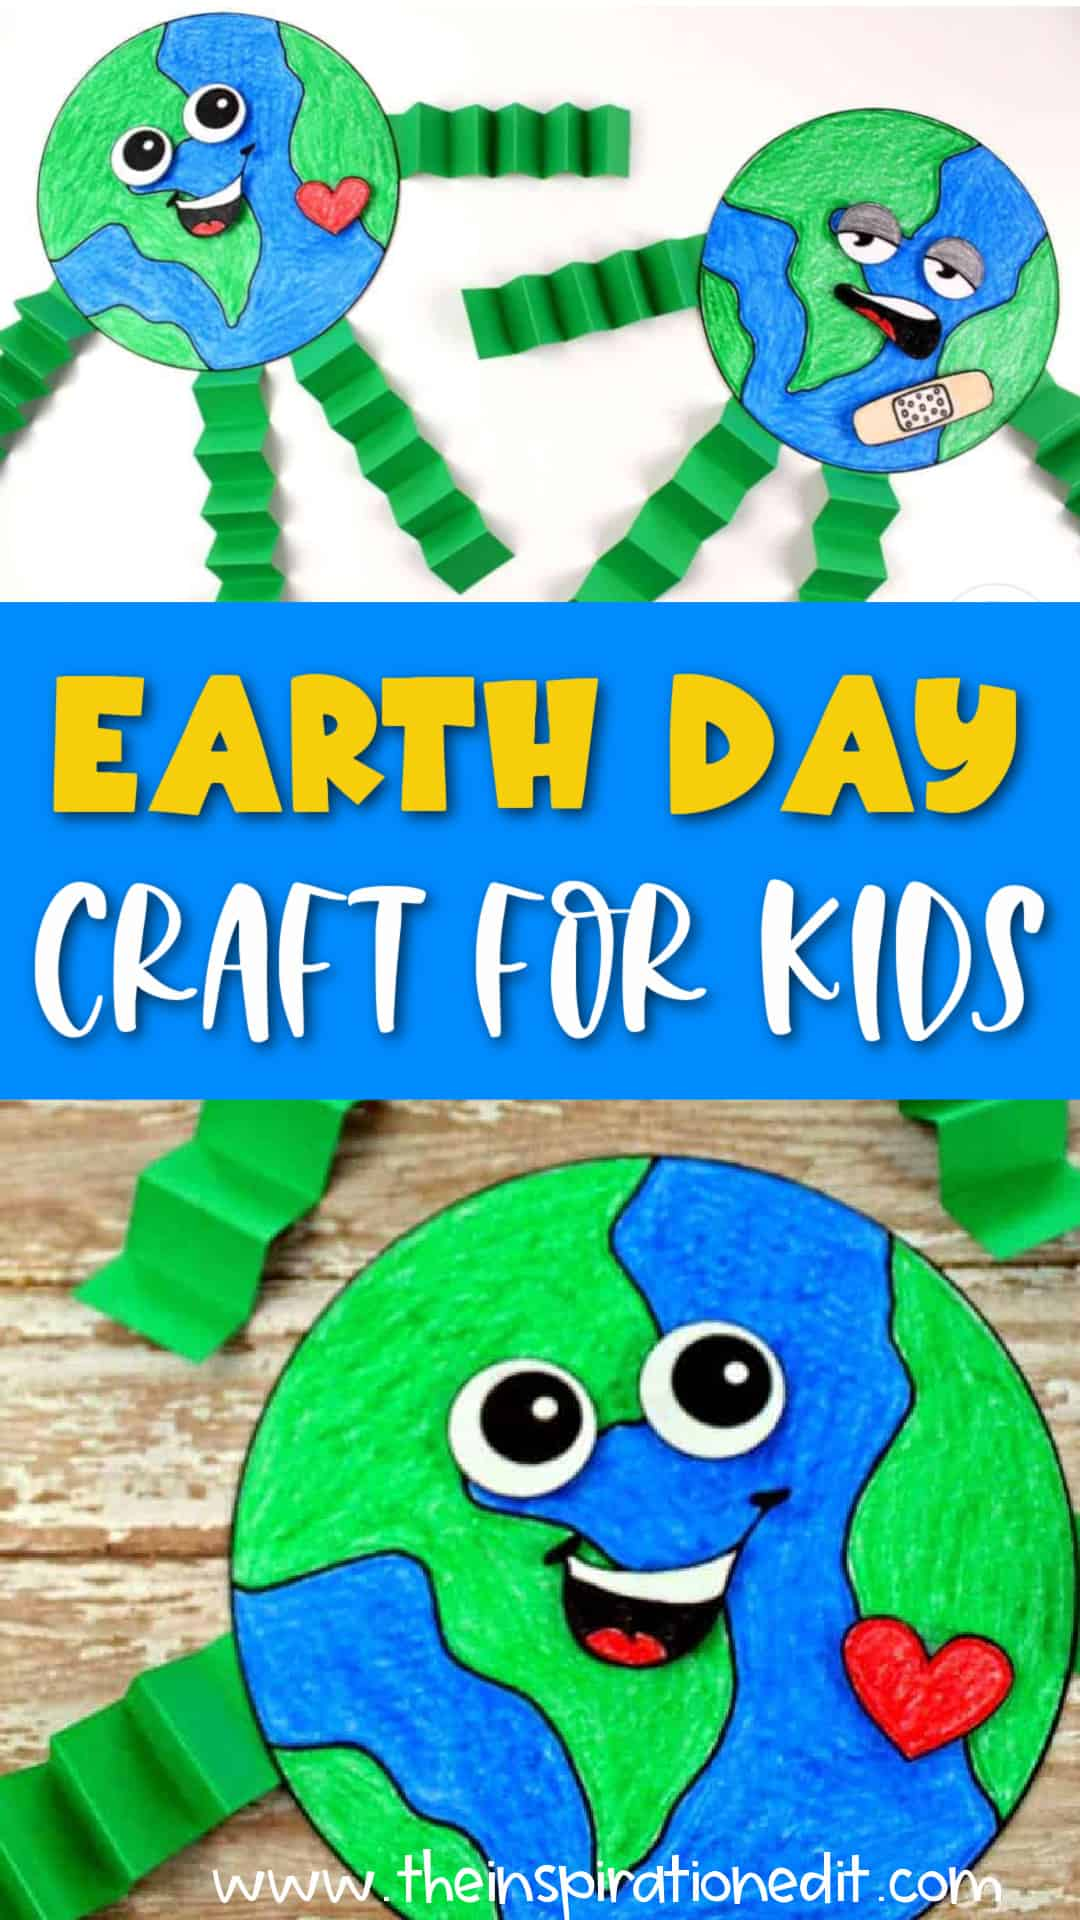 earth-day-craft-for kids